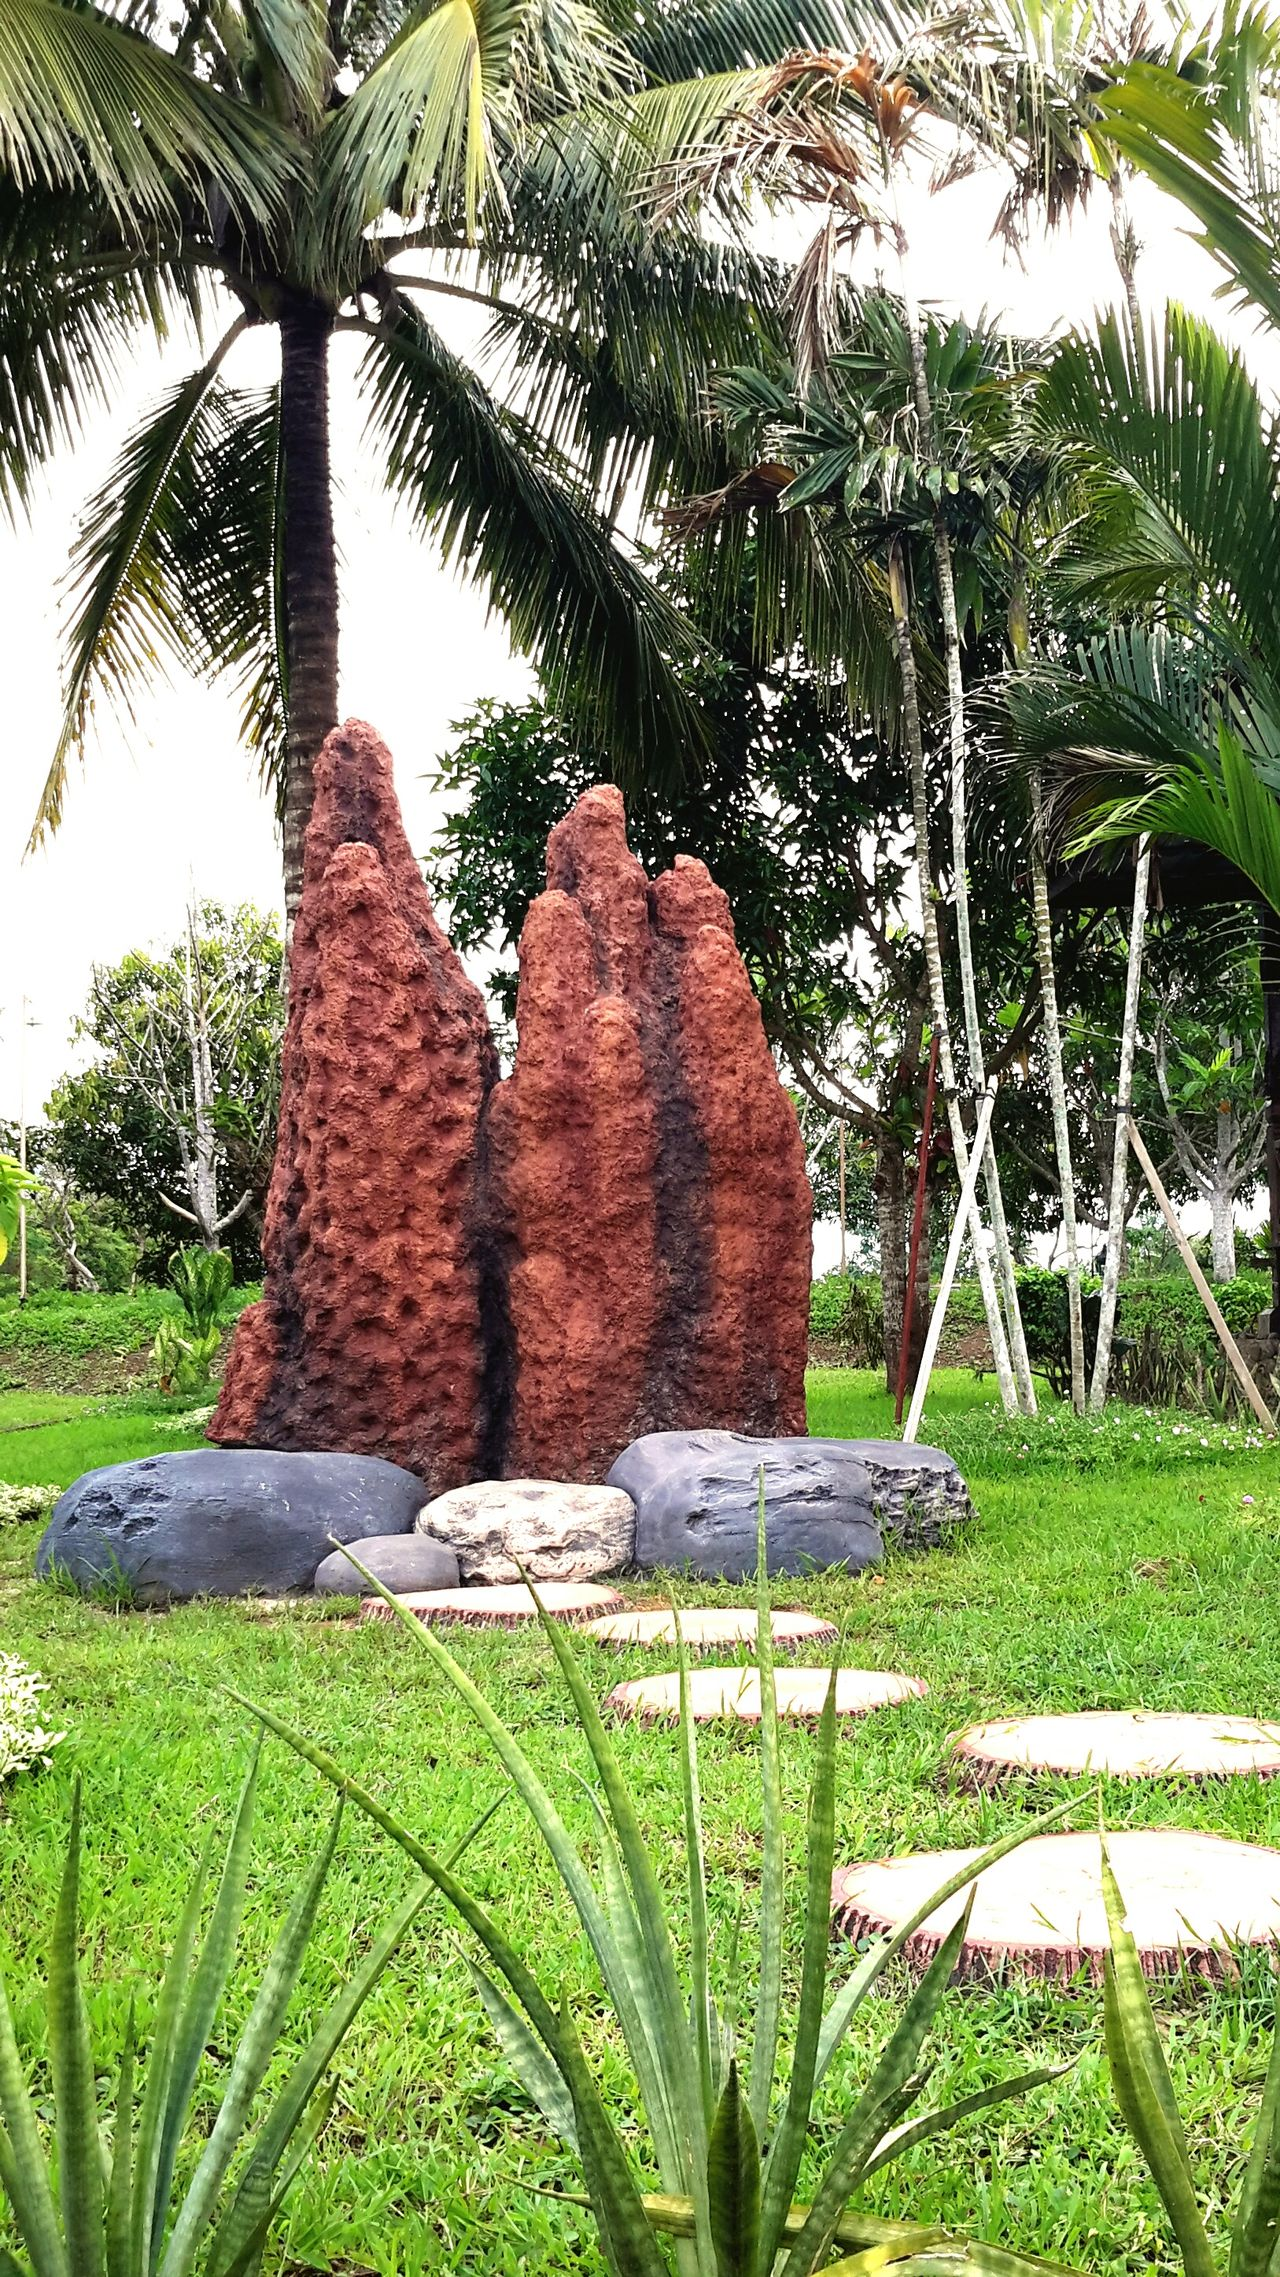 sarang semut papua.. Sarang Semut Merauke Papua INDONESIA Showcase March Hello World Exterior Design Beautiful Nature